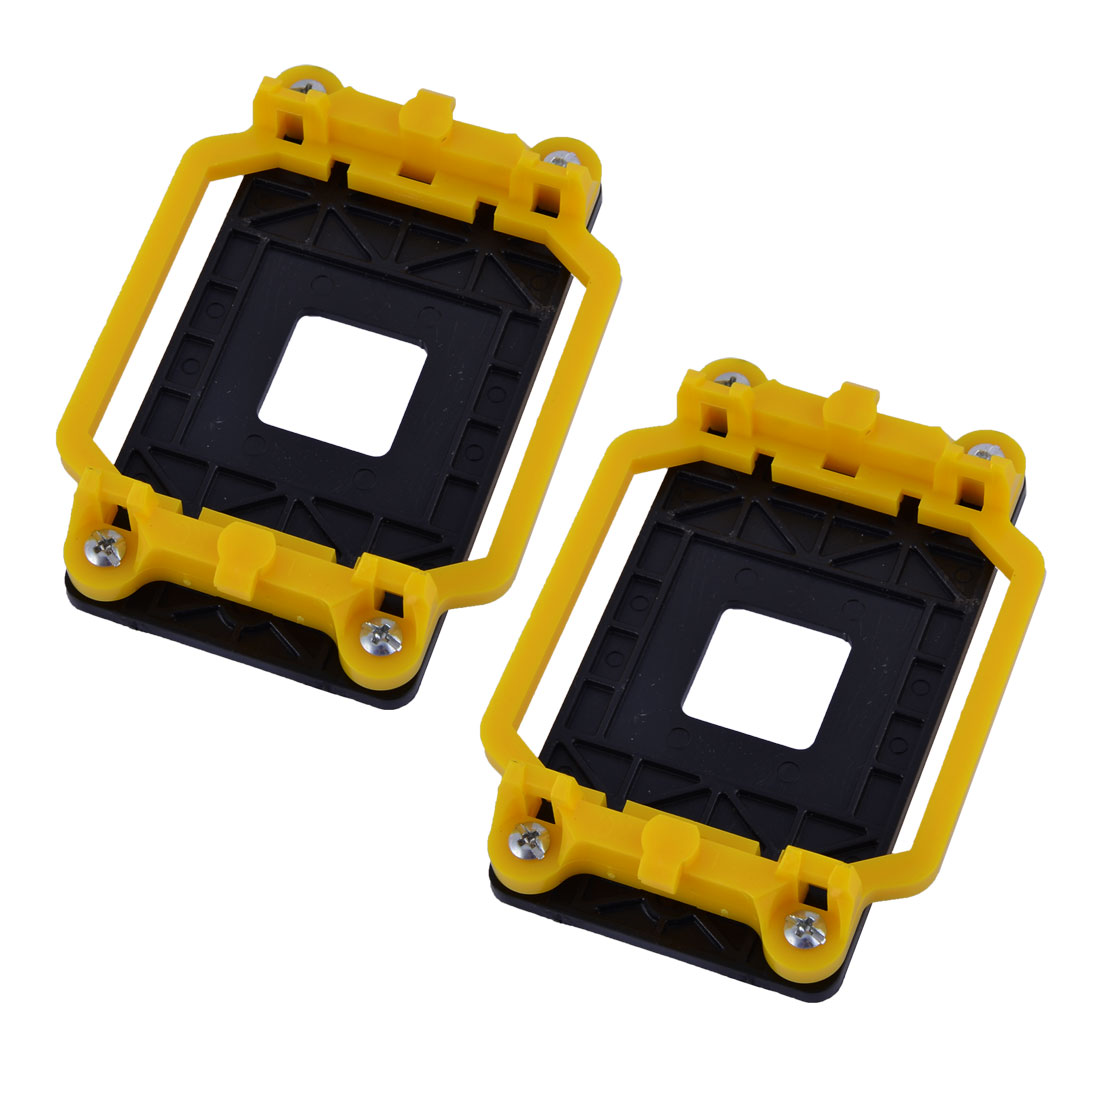 2pcs Plastic AM2 AM3 FM1 FM2 FM2+ Socket CPU Fan Heatsink Bracket Holder Yellow